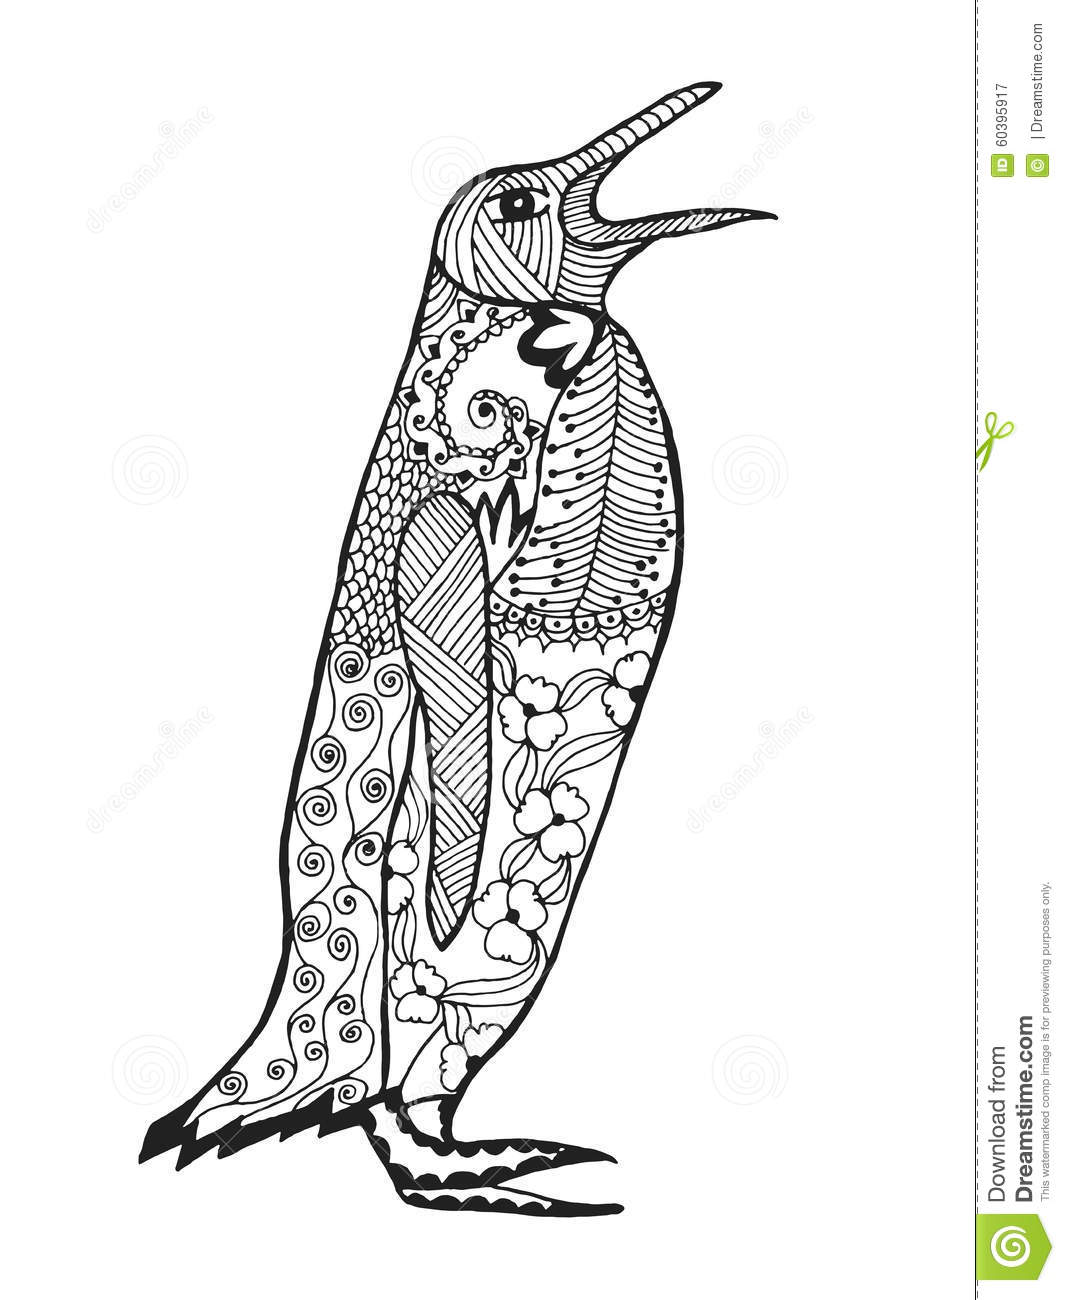 Zentangle stylized penguin sketch for tattoo or t shirt for Penguin adult coloring pages